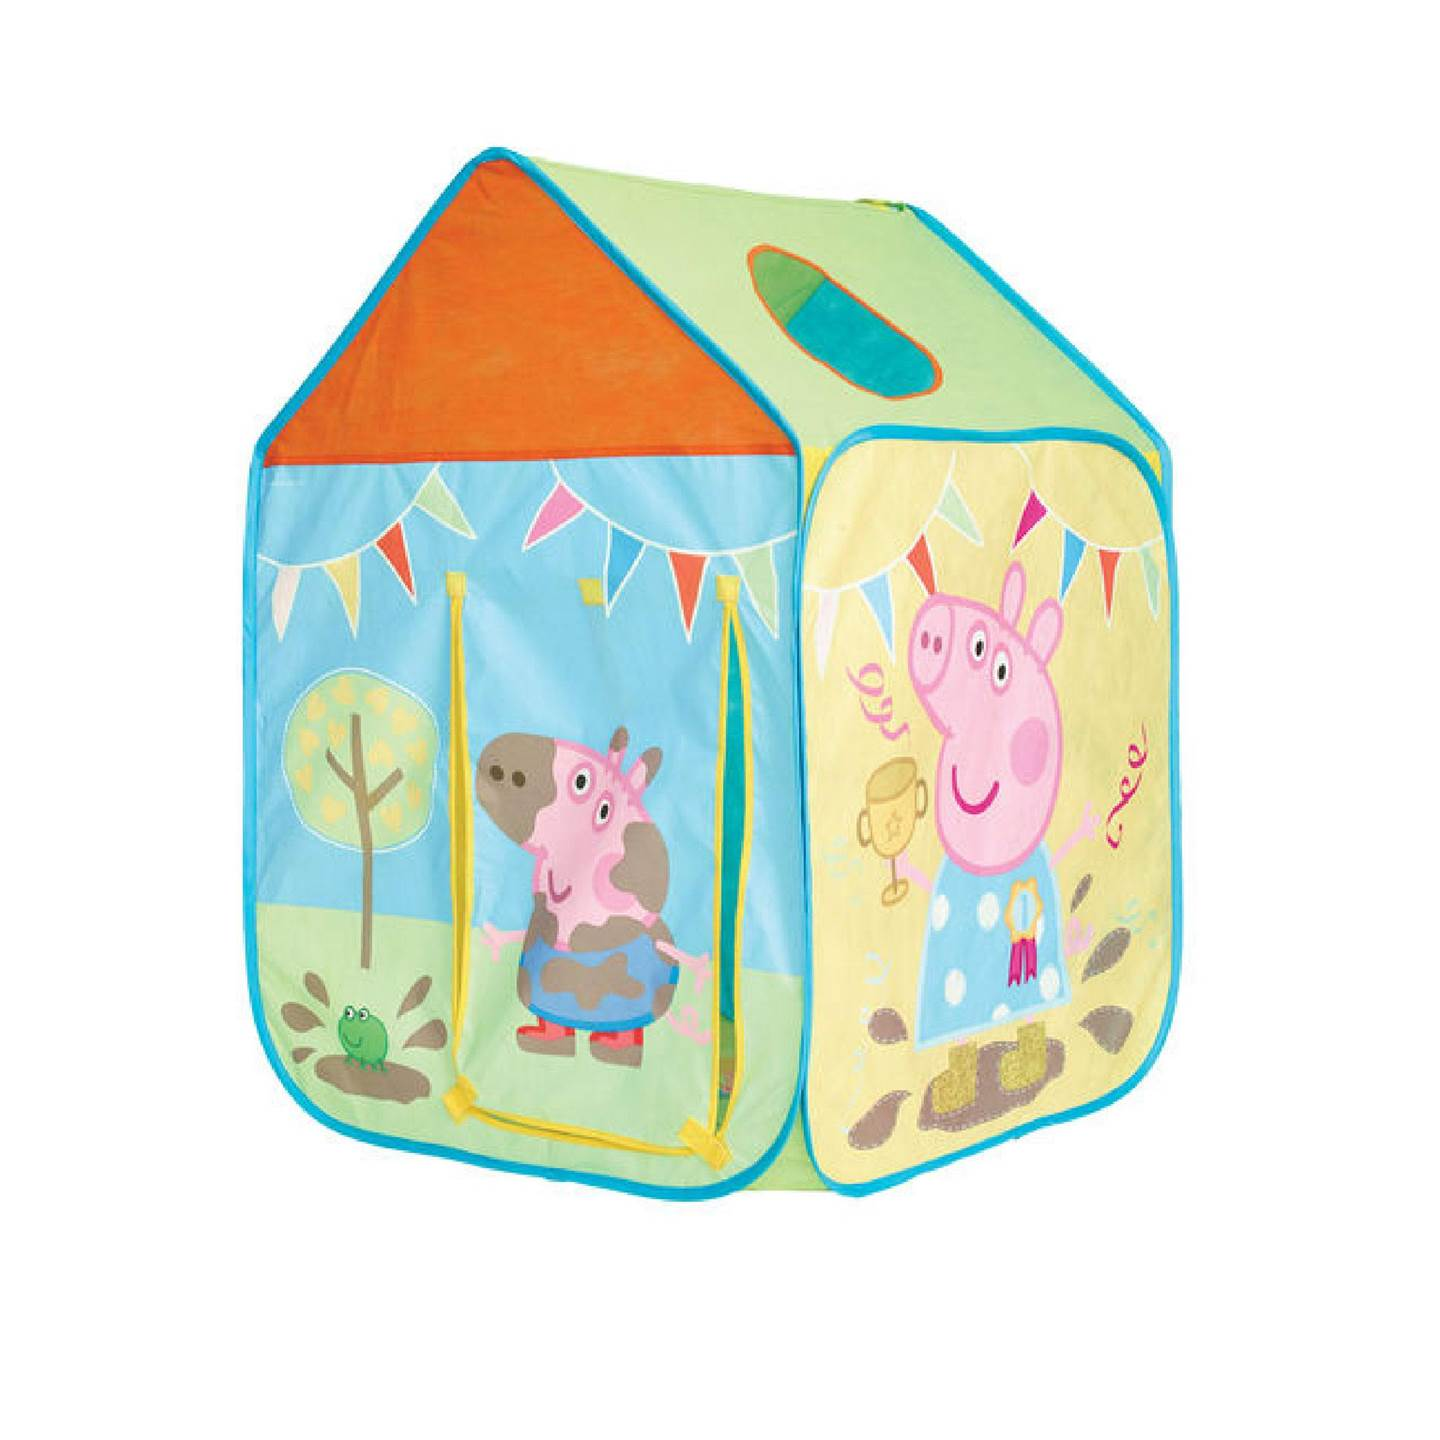 PW120156PGG000 Peppa Pig House Play Tent(1)